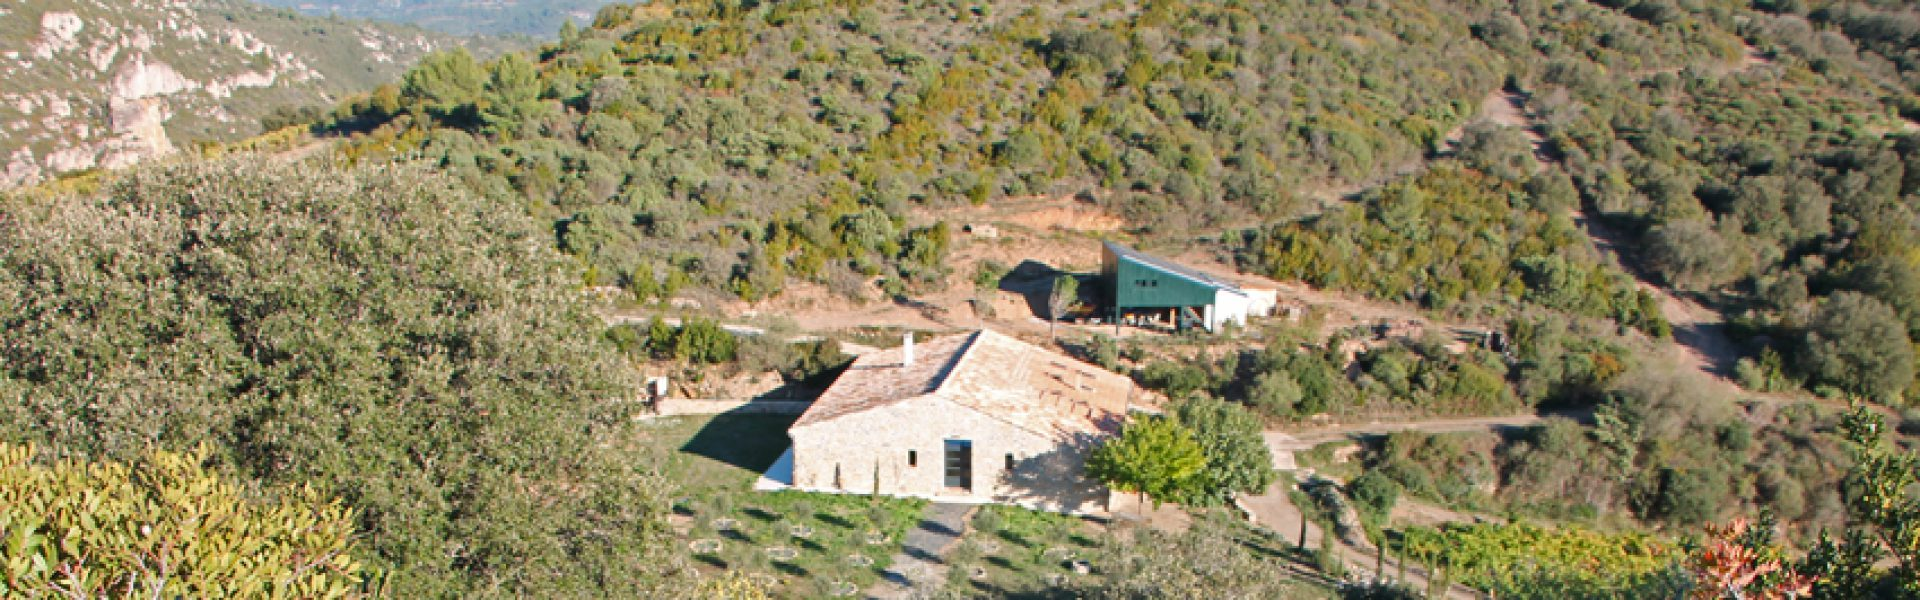 Guesthouse & Retreat Center in Southern France